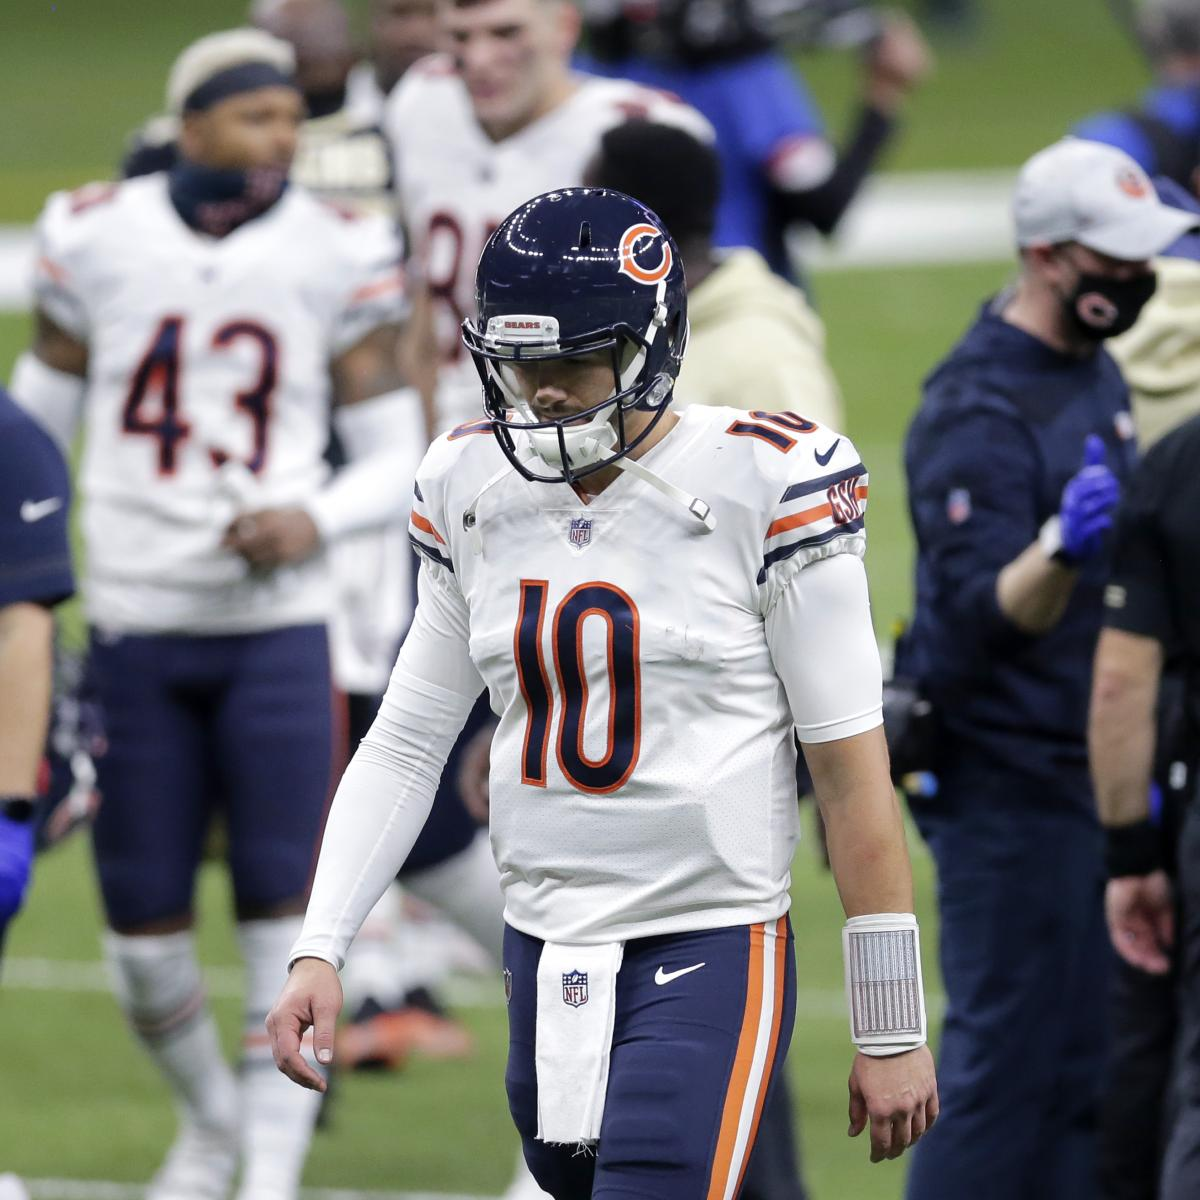 Mitchell Trubisky Rumors: Bears, QB Could Both Use 'Fresh Start' After 4 Years